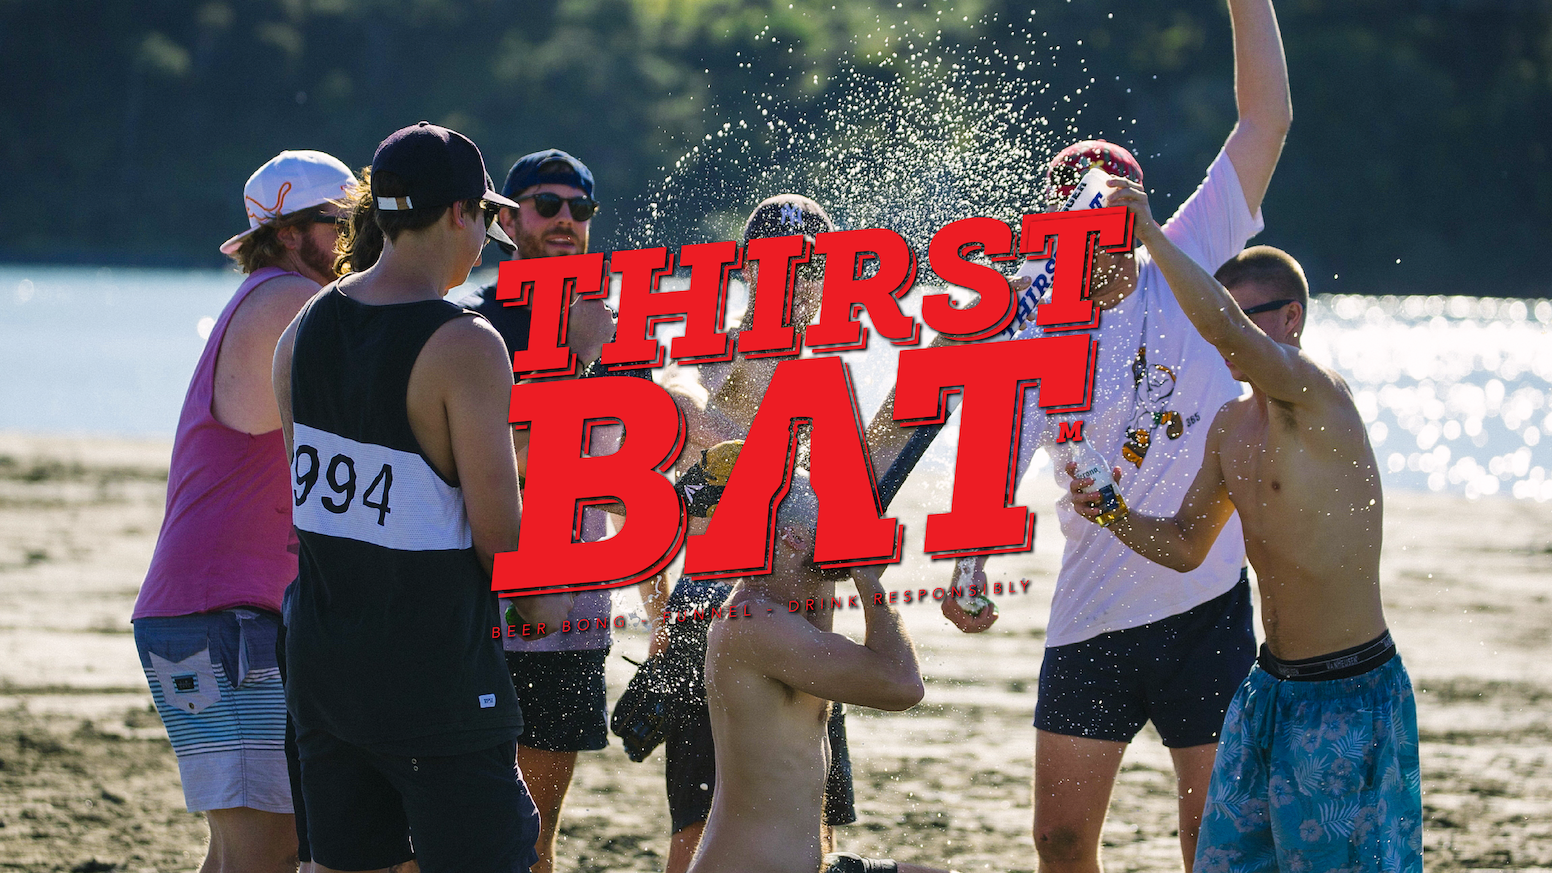 ThirstBat is the only sports bat / beer bong you will ever need! Smash that homer, crush that 6, fill it up, and take one for the team!